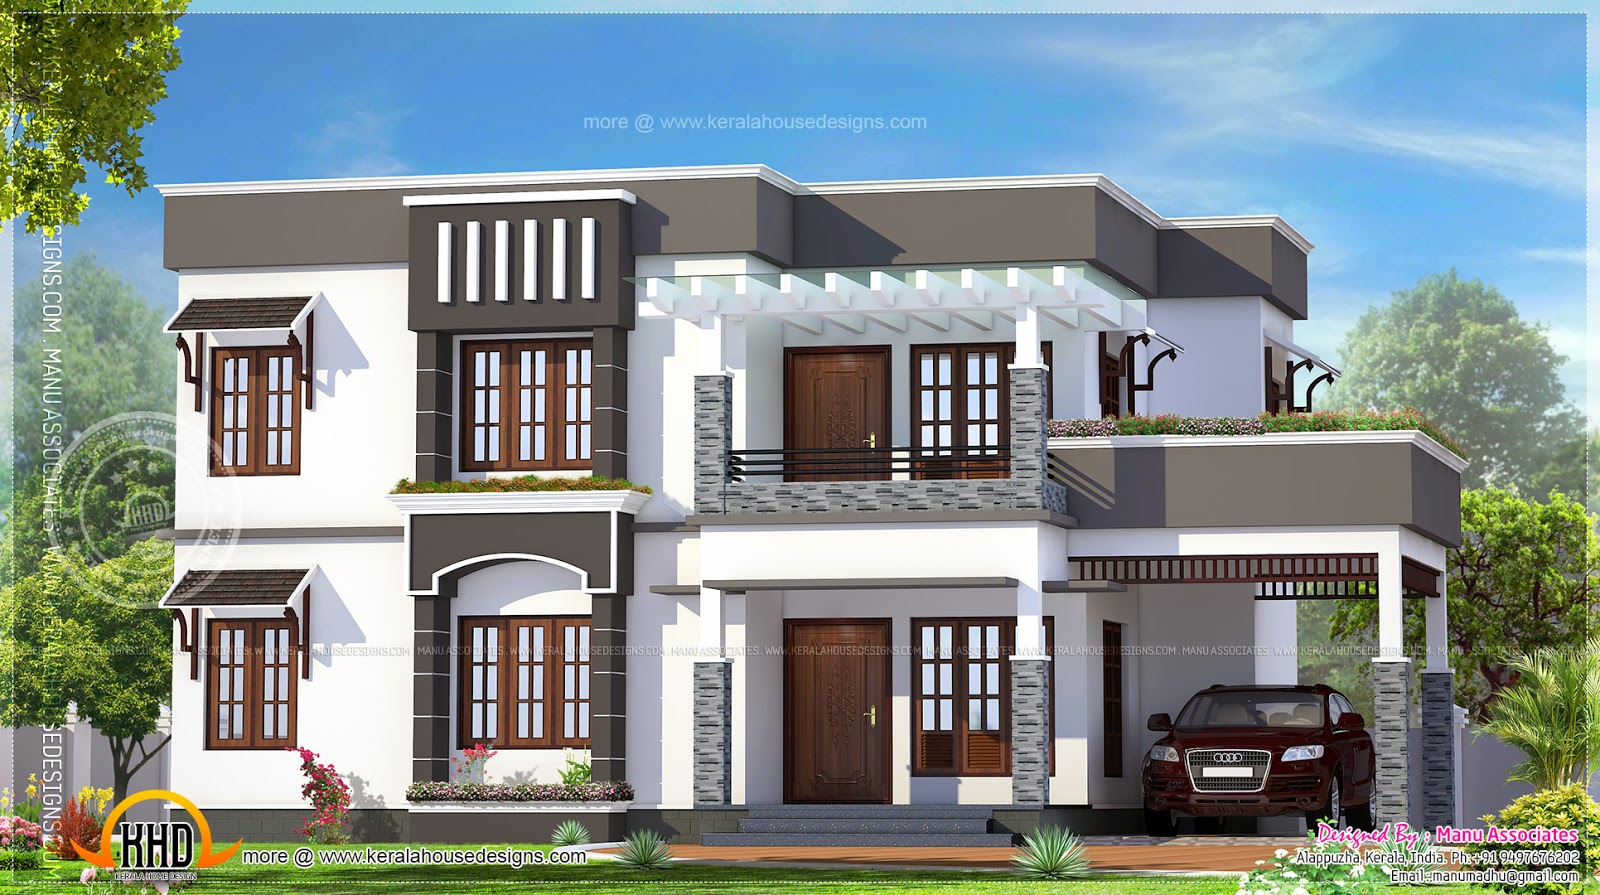 4 bhk flat roof house exterior kerala home design and for House outside design in india